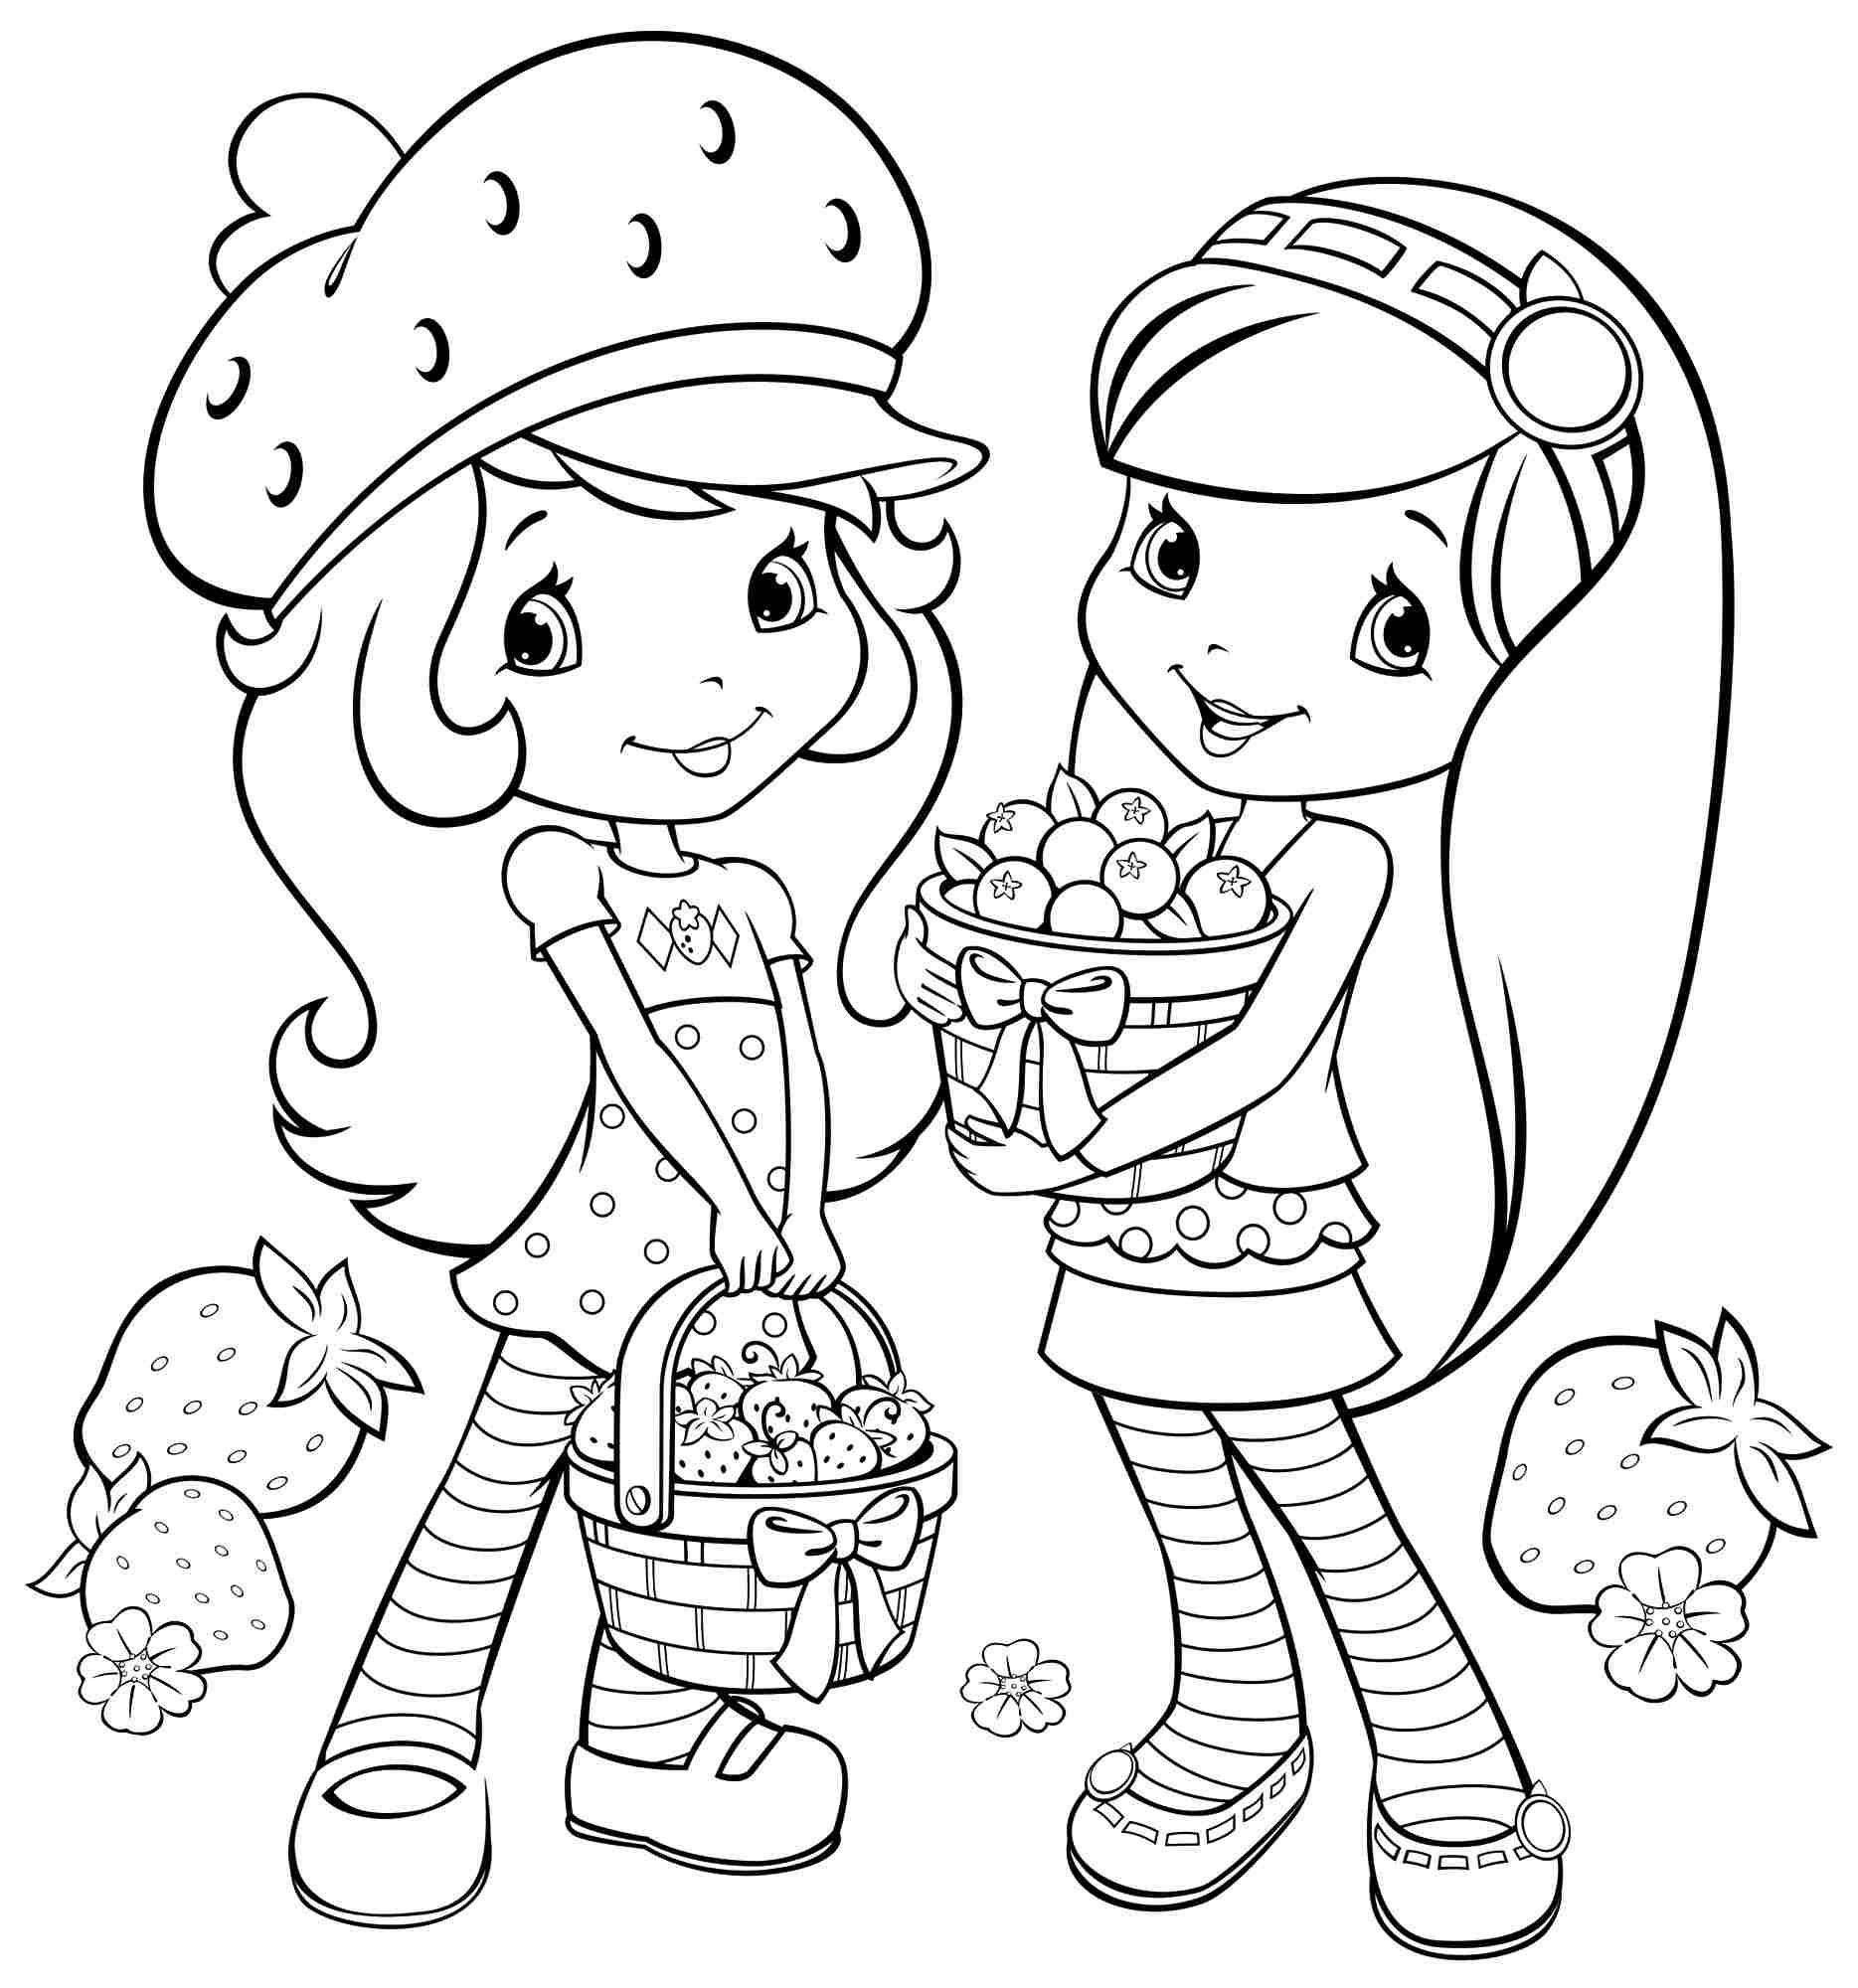 Printable Coloring Pages Cartoon Strawberry Shortcake And Friends